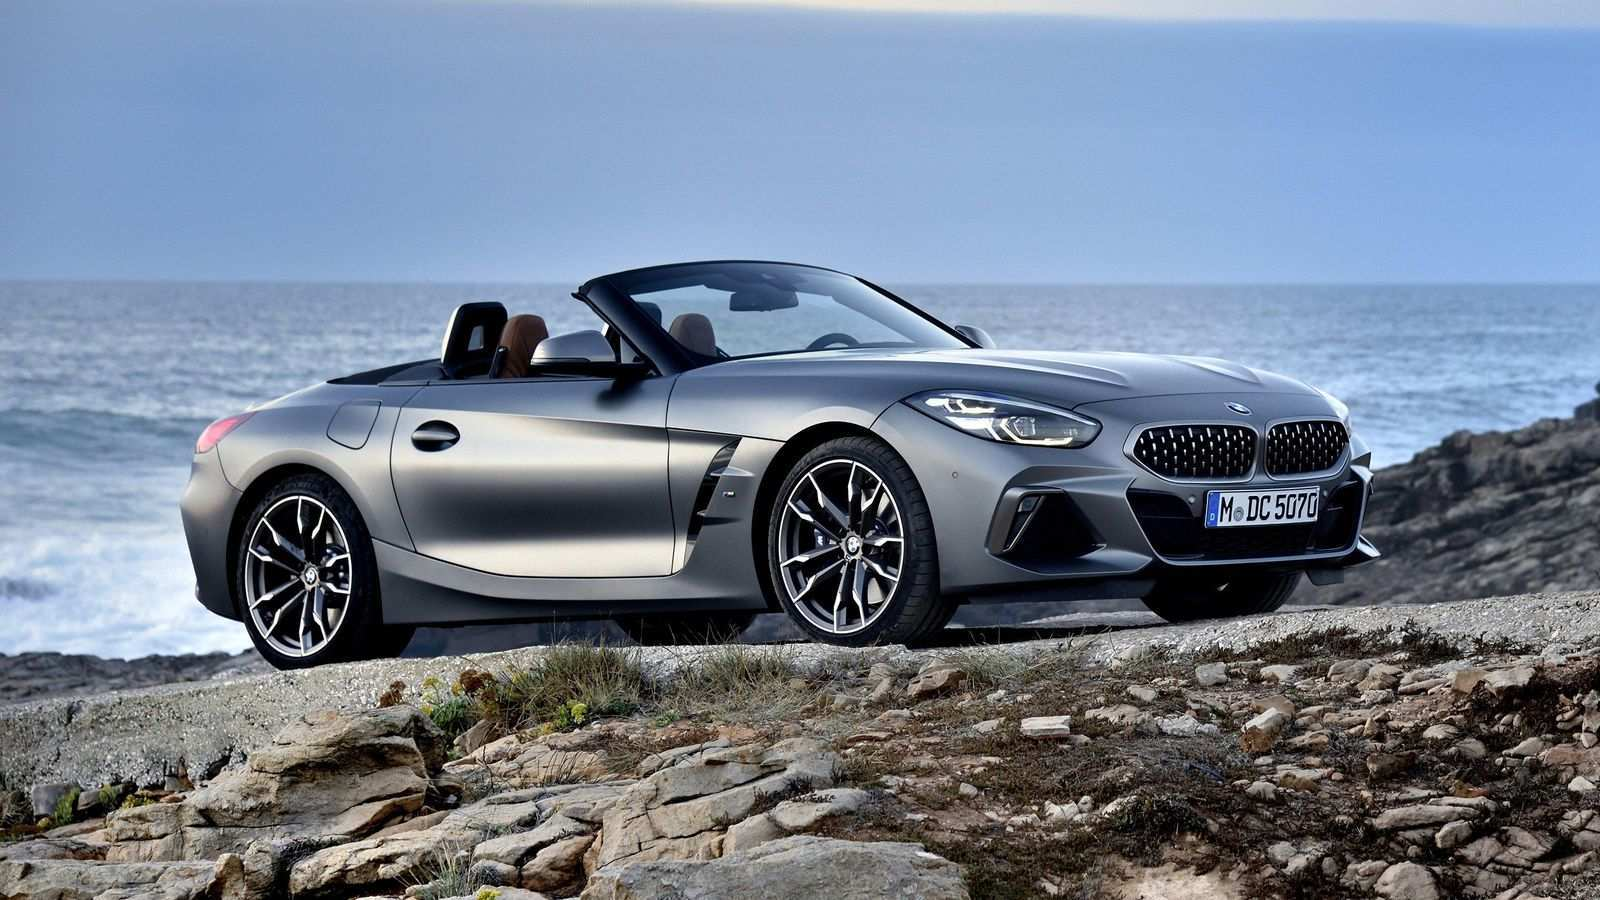 52 Great BMW Z4 Coupe 2020 Photos with BMW Z4 Coupe 2020